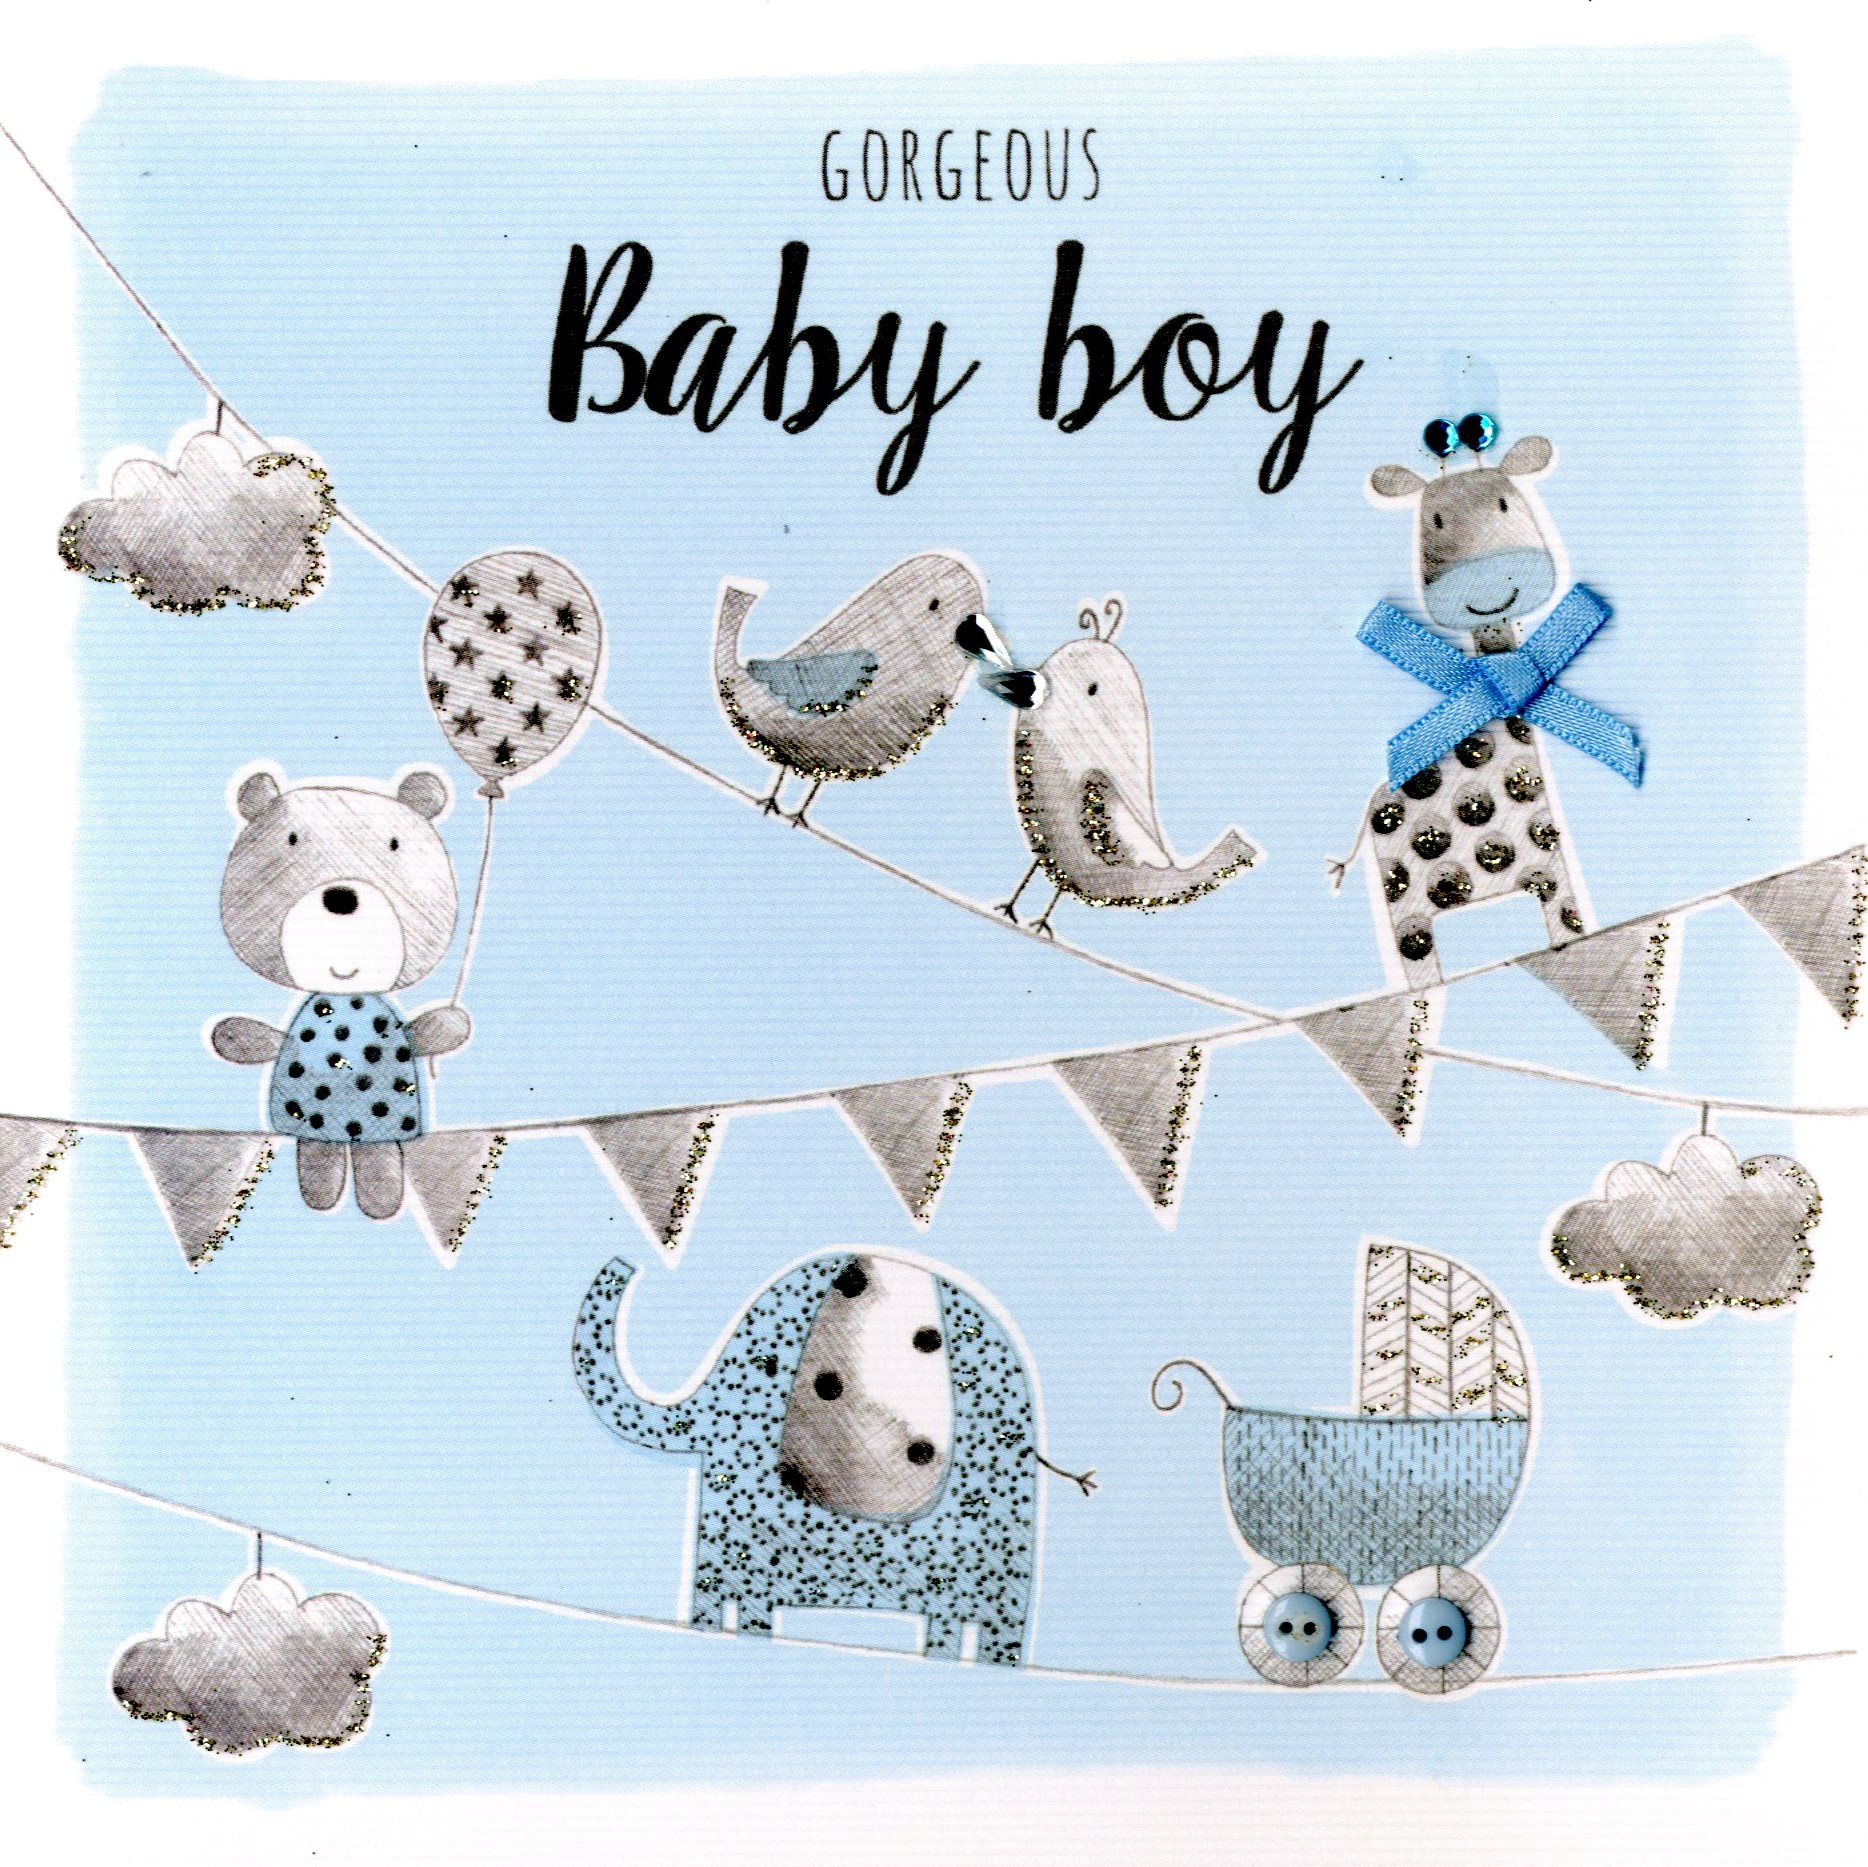 Gorgeous baby boy embellished greeting card cards love kates gorgeous baby boy embellished greeting card kristyandbryce Image collections